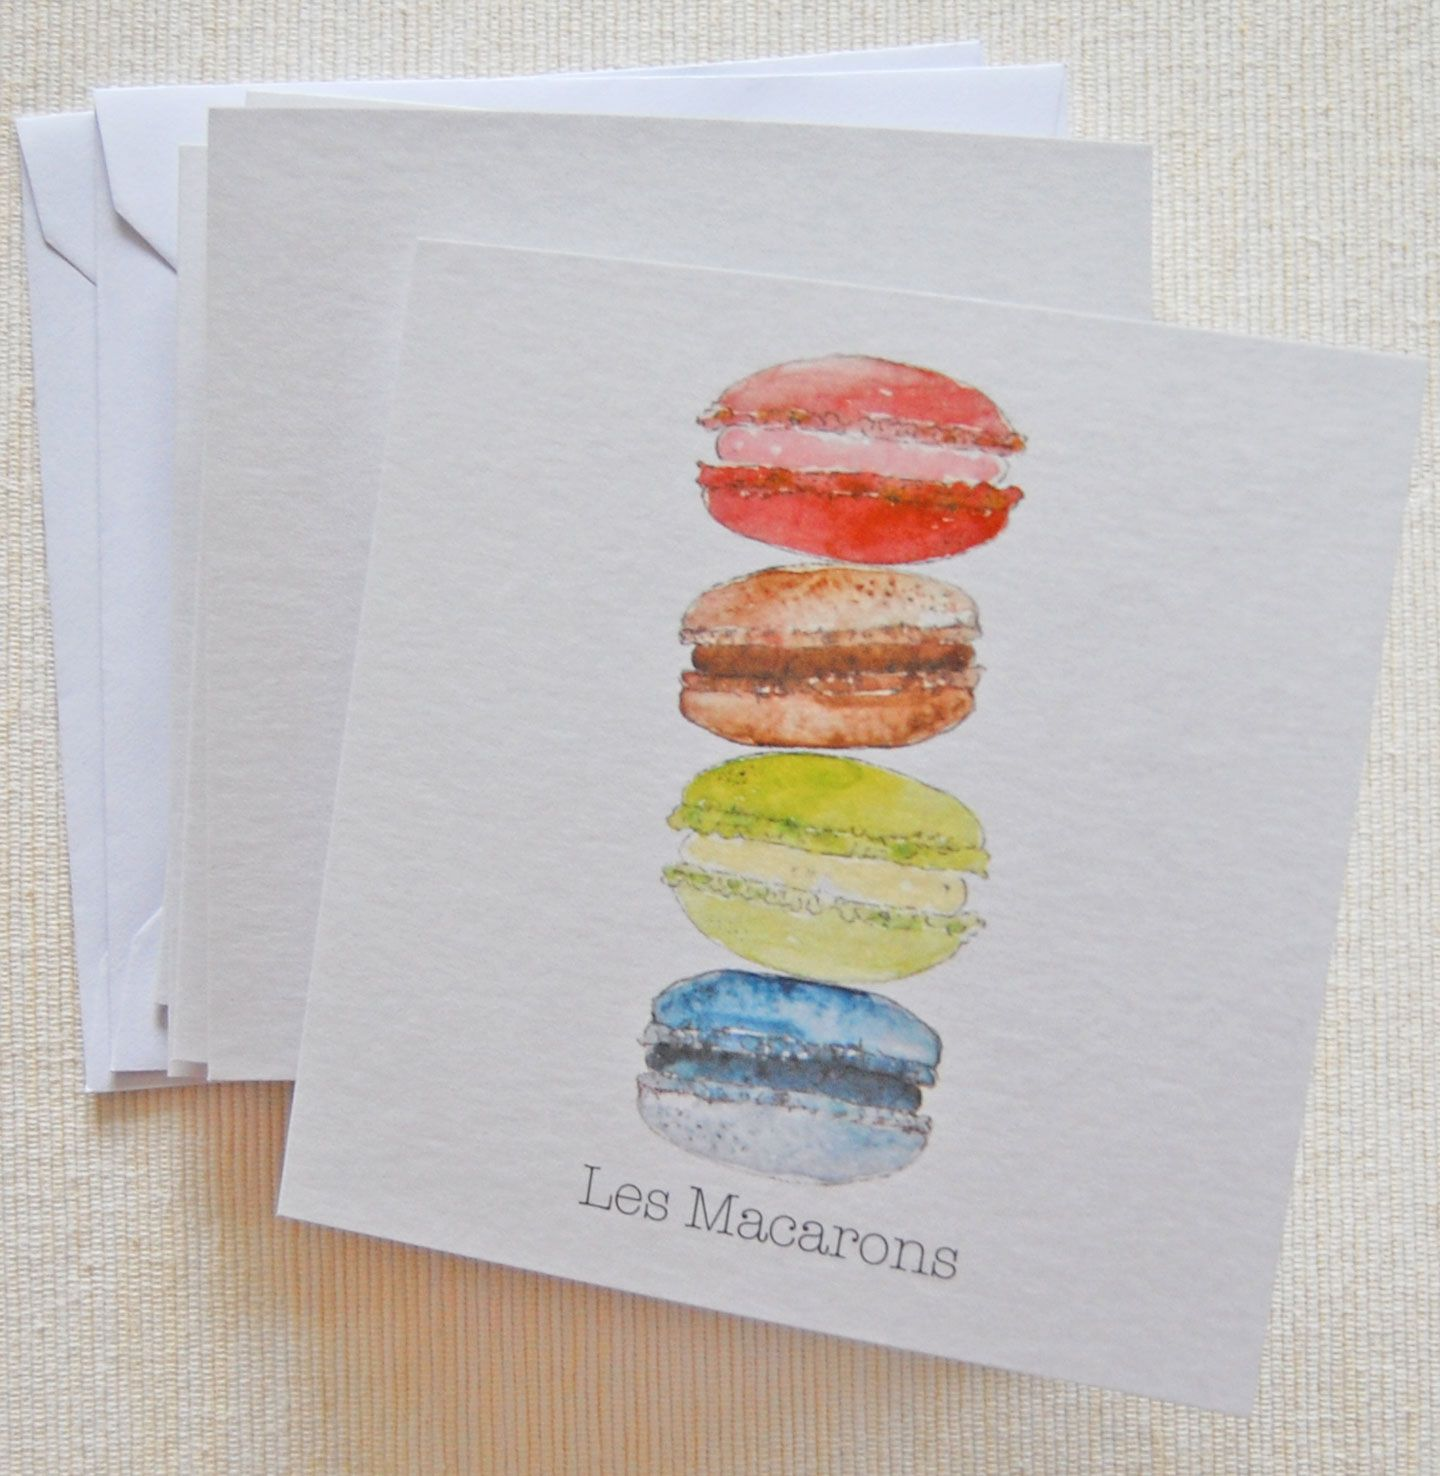 Macaron treat greeting card card making pinterest cards and craft macaron treat greeting card m4hsunfo Choice Image